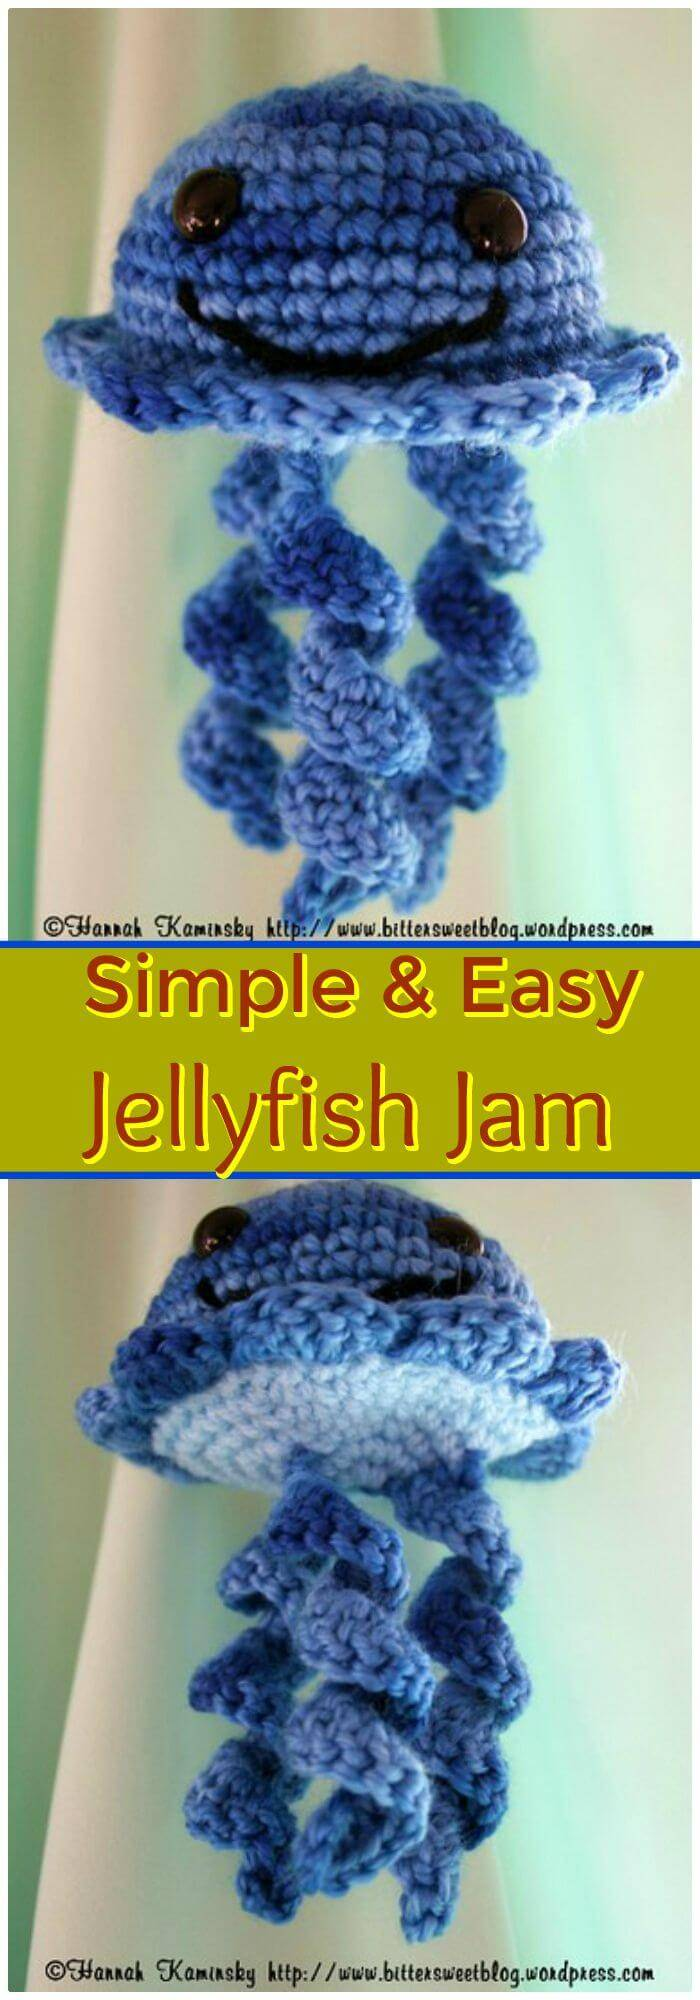 Crochet jellyfish 14 free crochet patterns diy crafts you have not seen ever a cuter jellyfish than this that comes with big eyes and has been crocheted with yarn would make a perfect gift for kids and also a bankloansurffo Choice Image